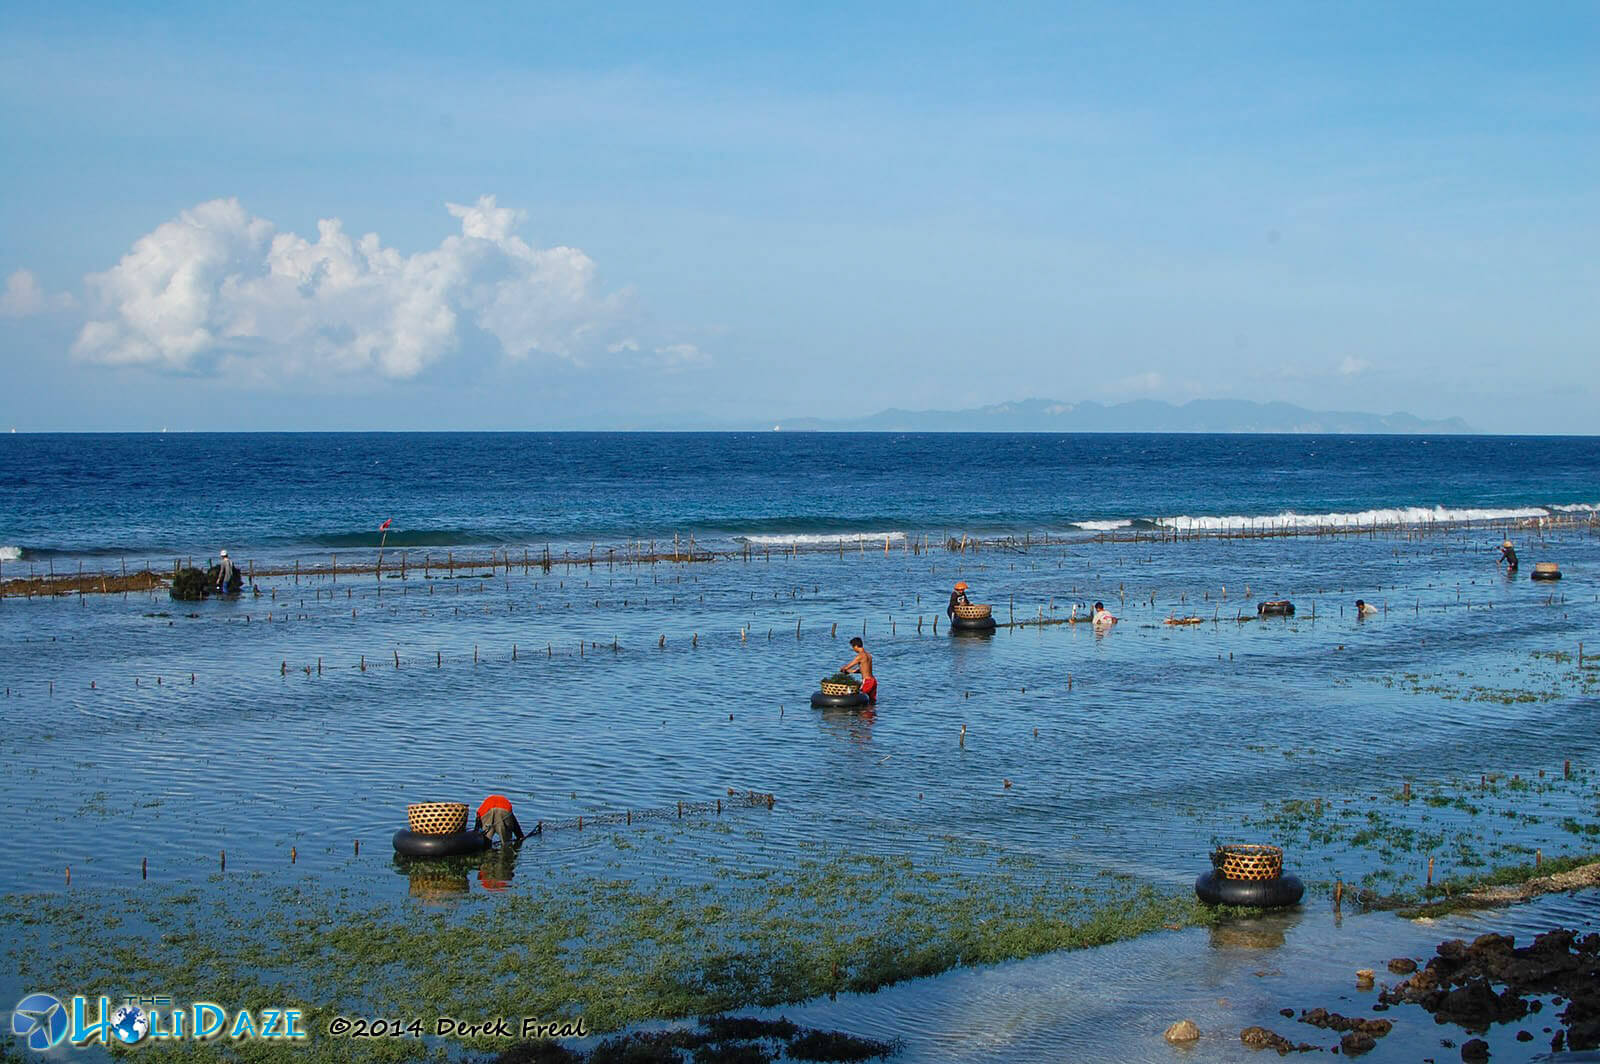 Seaweed farmers hard at work on Nusa Penida Island, Indonesia